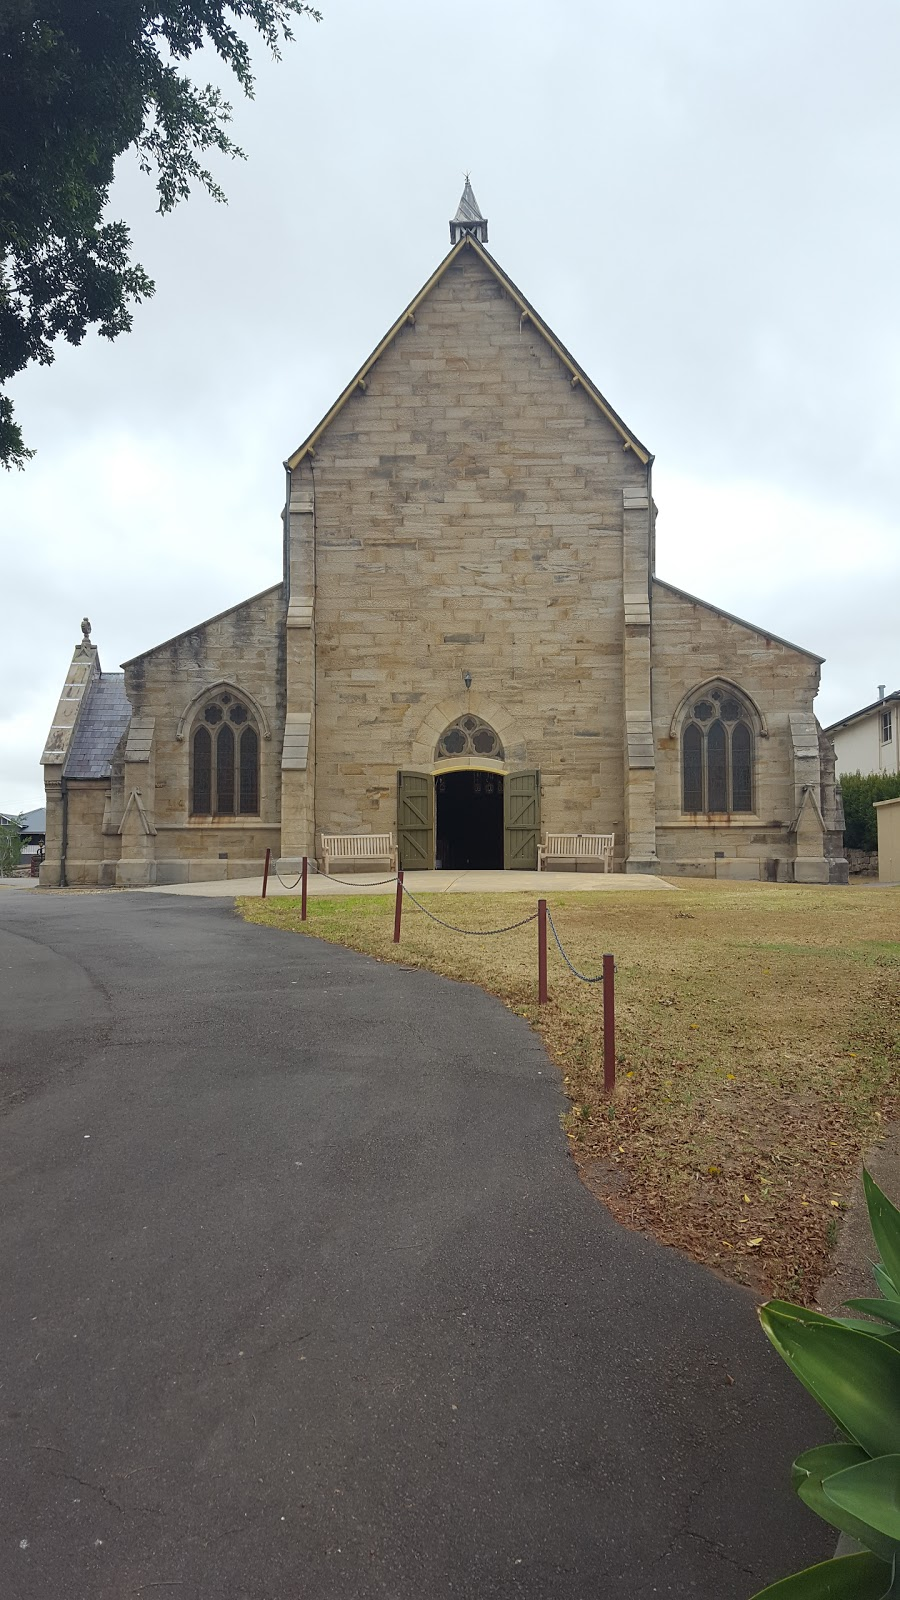 Saint Peters Church, Anglican Parish of East Maitland | church | 47 William St, East Maitland NSW 2323, Australia | 0249345303 OR +61 2 4934 5303